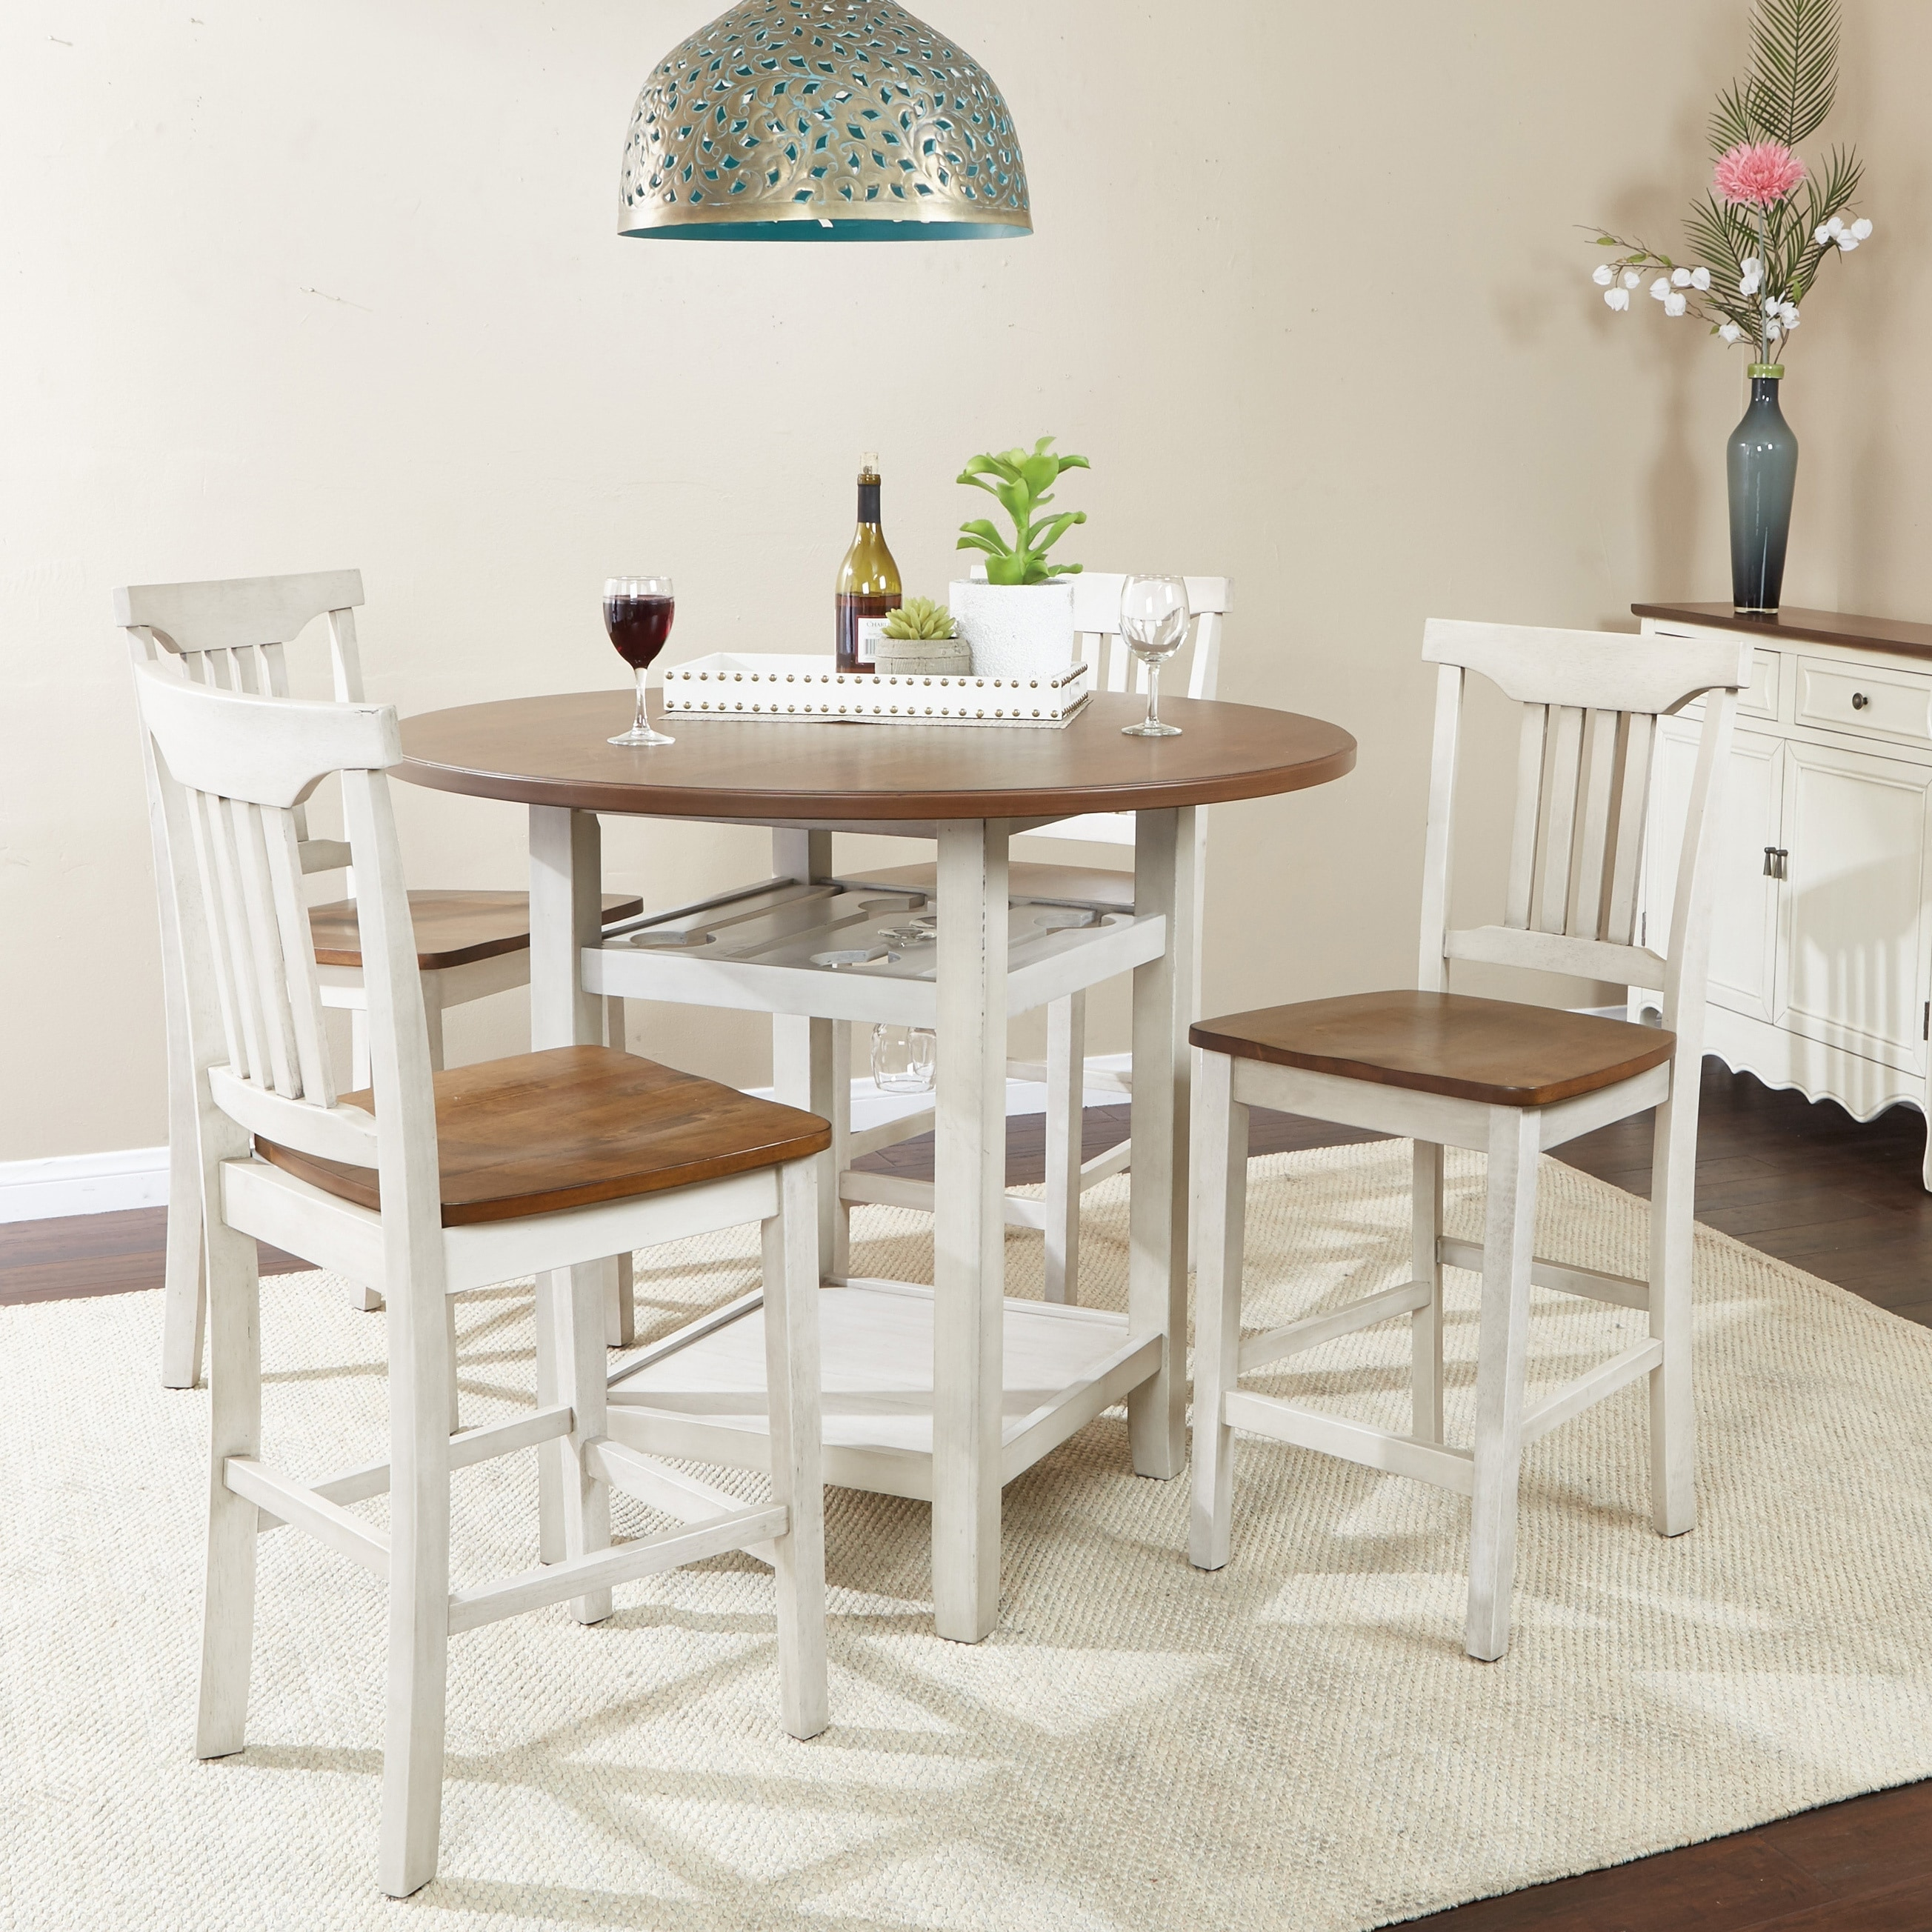 Porch & Den Simmons 5-piece Dining Room Chair and Table Set (Antique White)